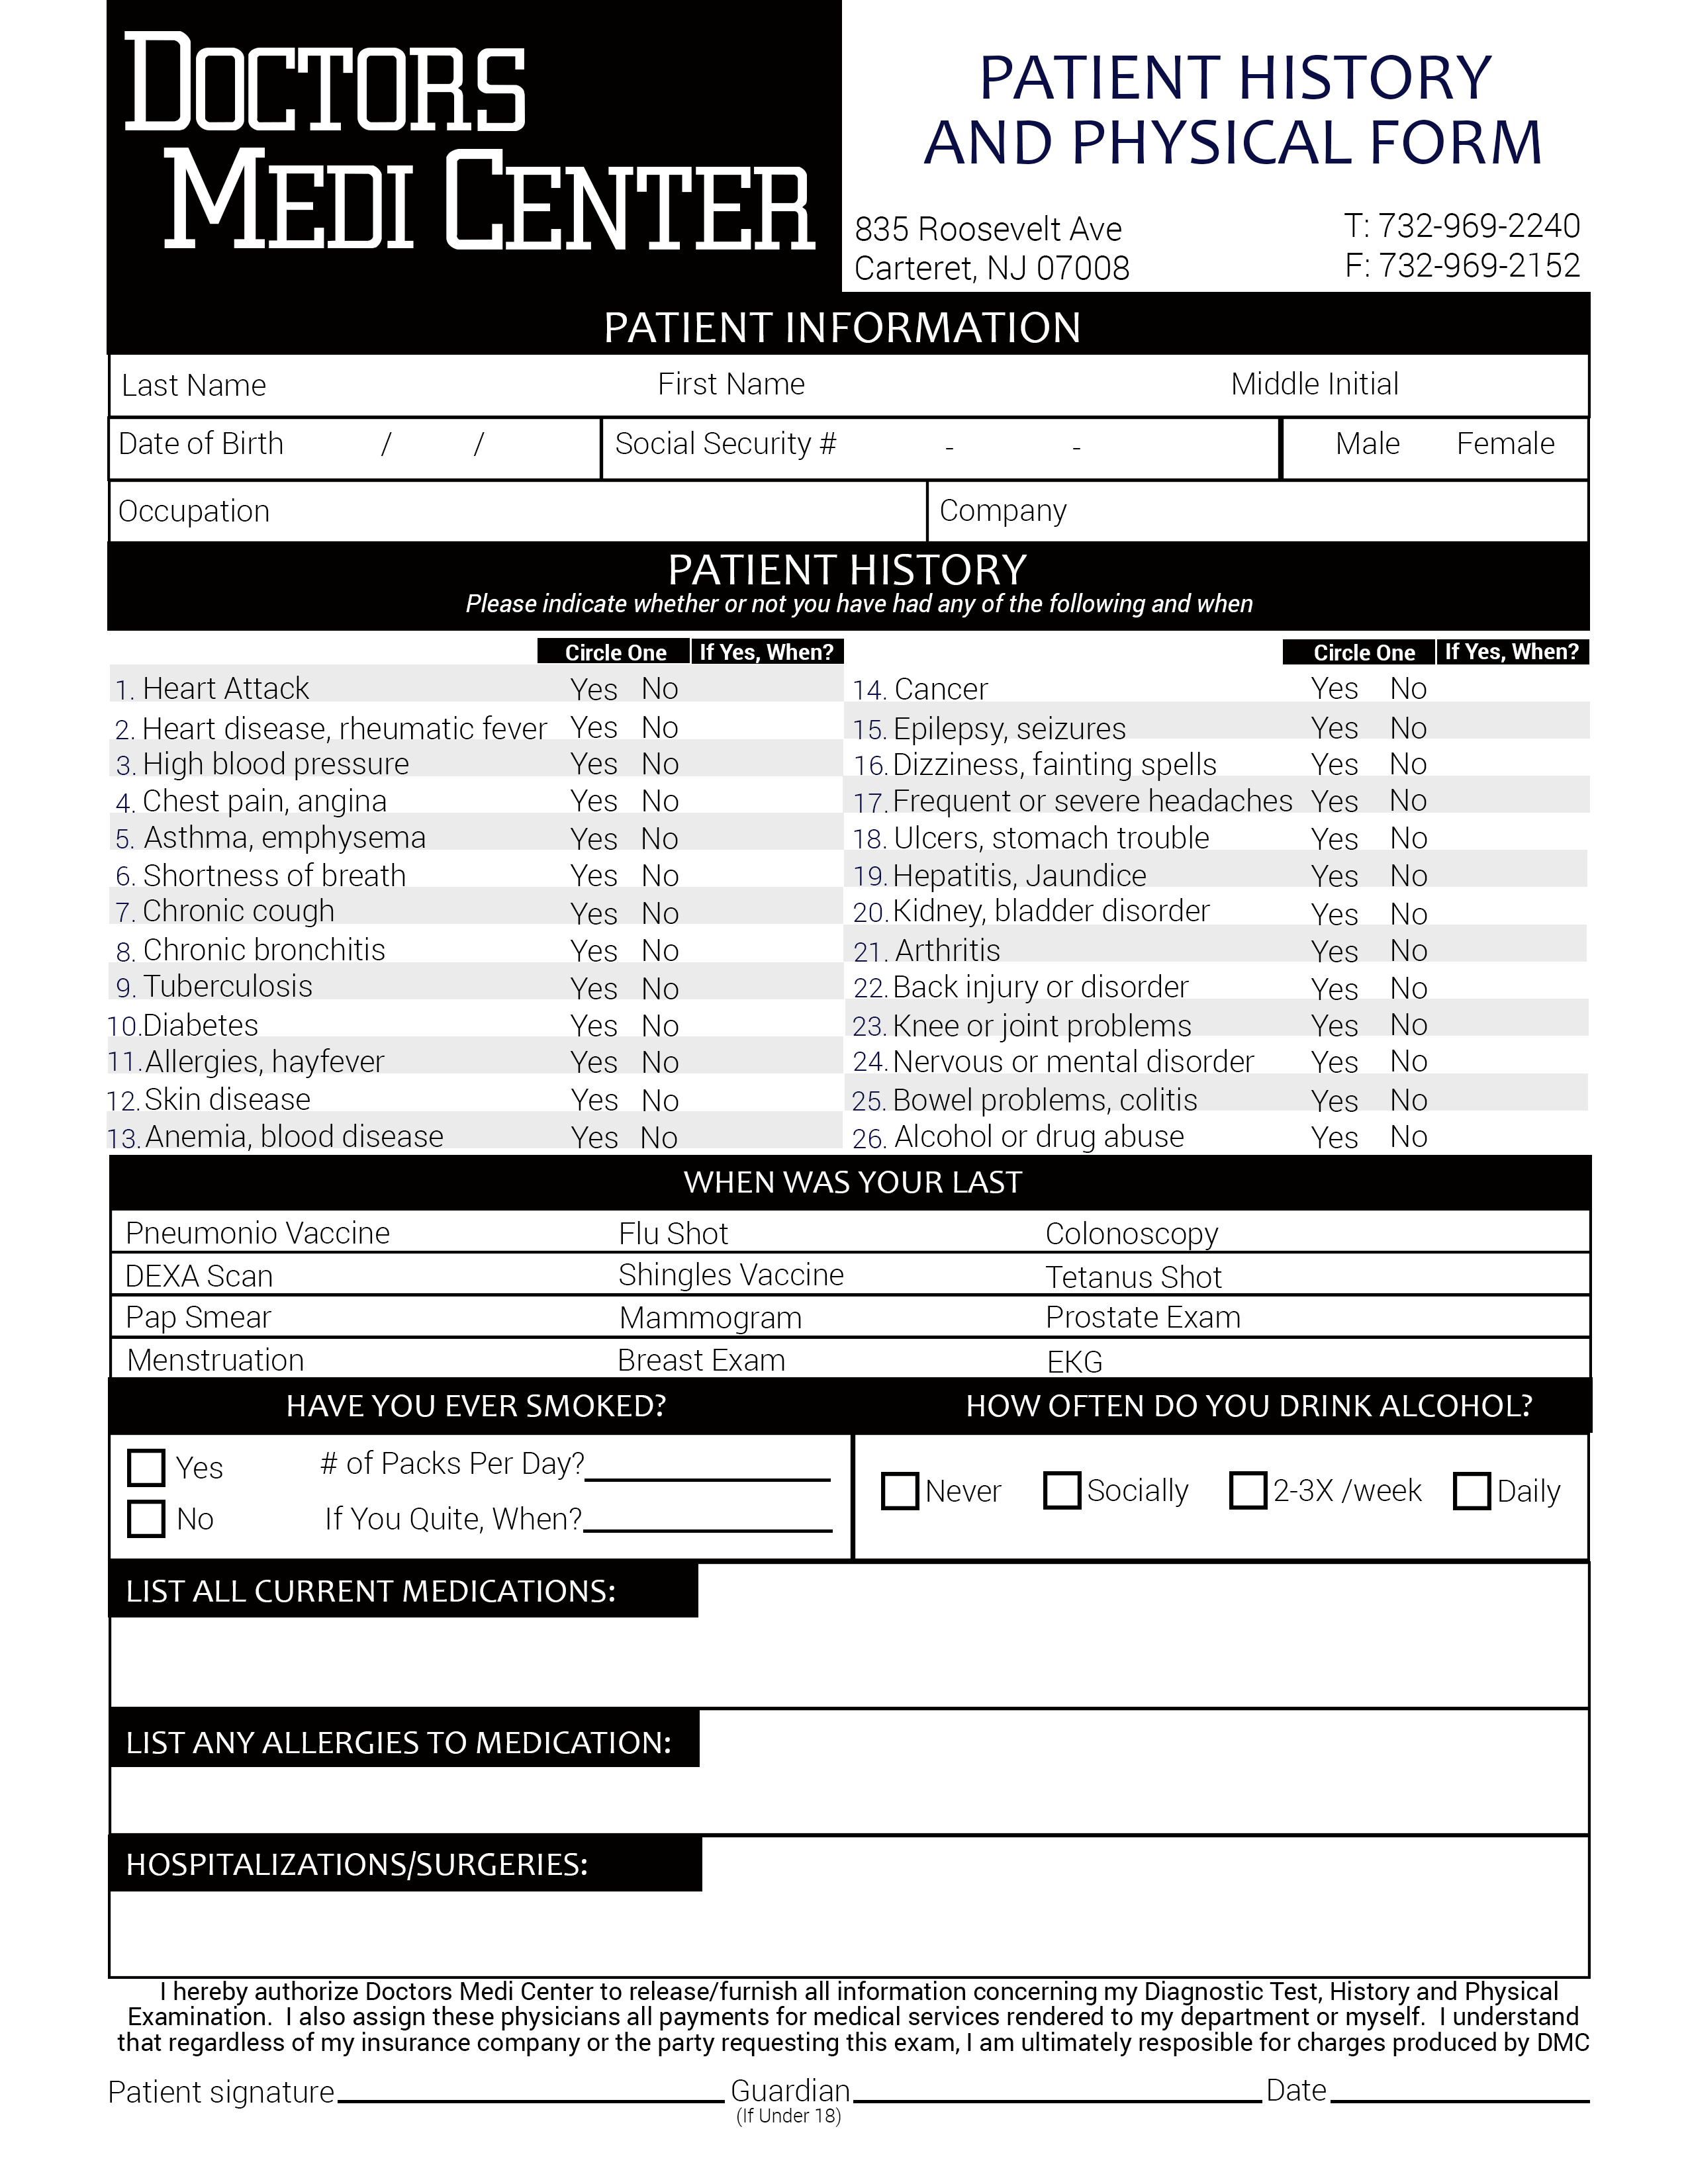 physical exam form yearly physical exam form is used by the doctors ...